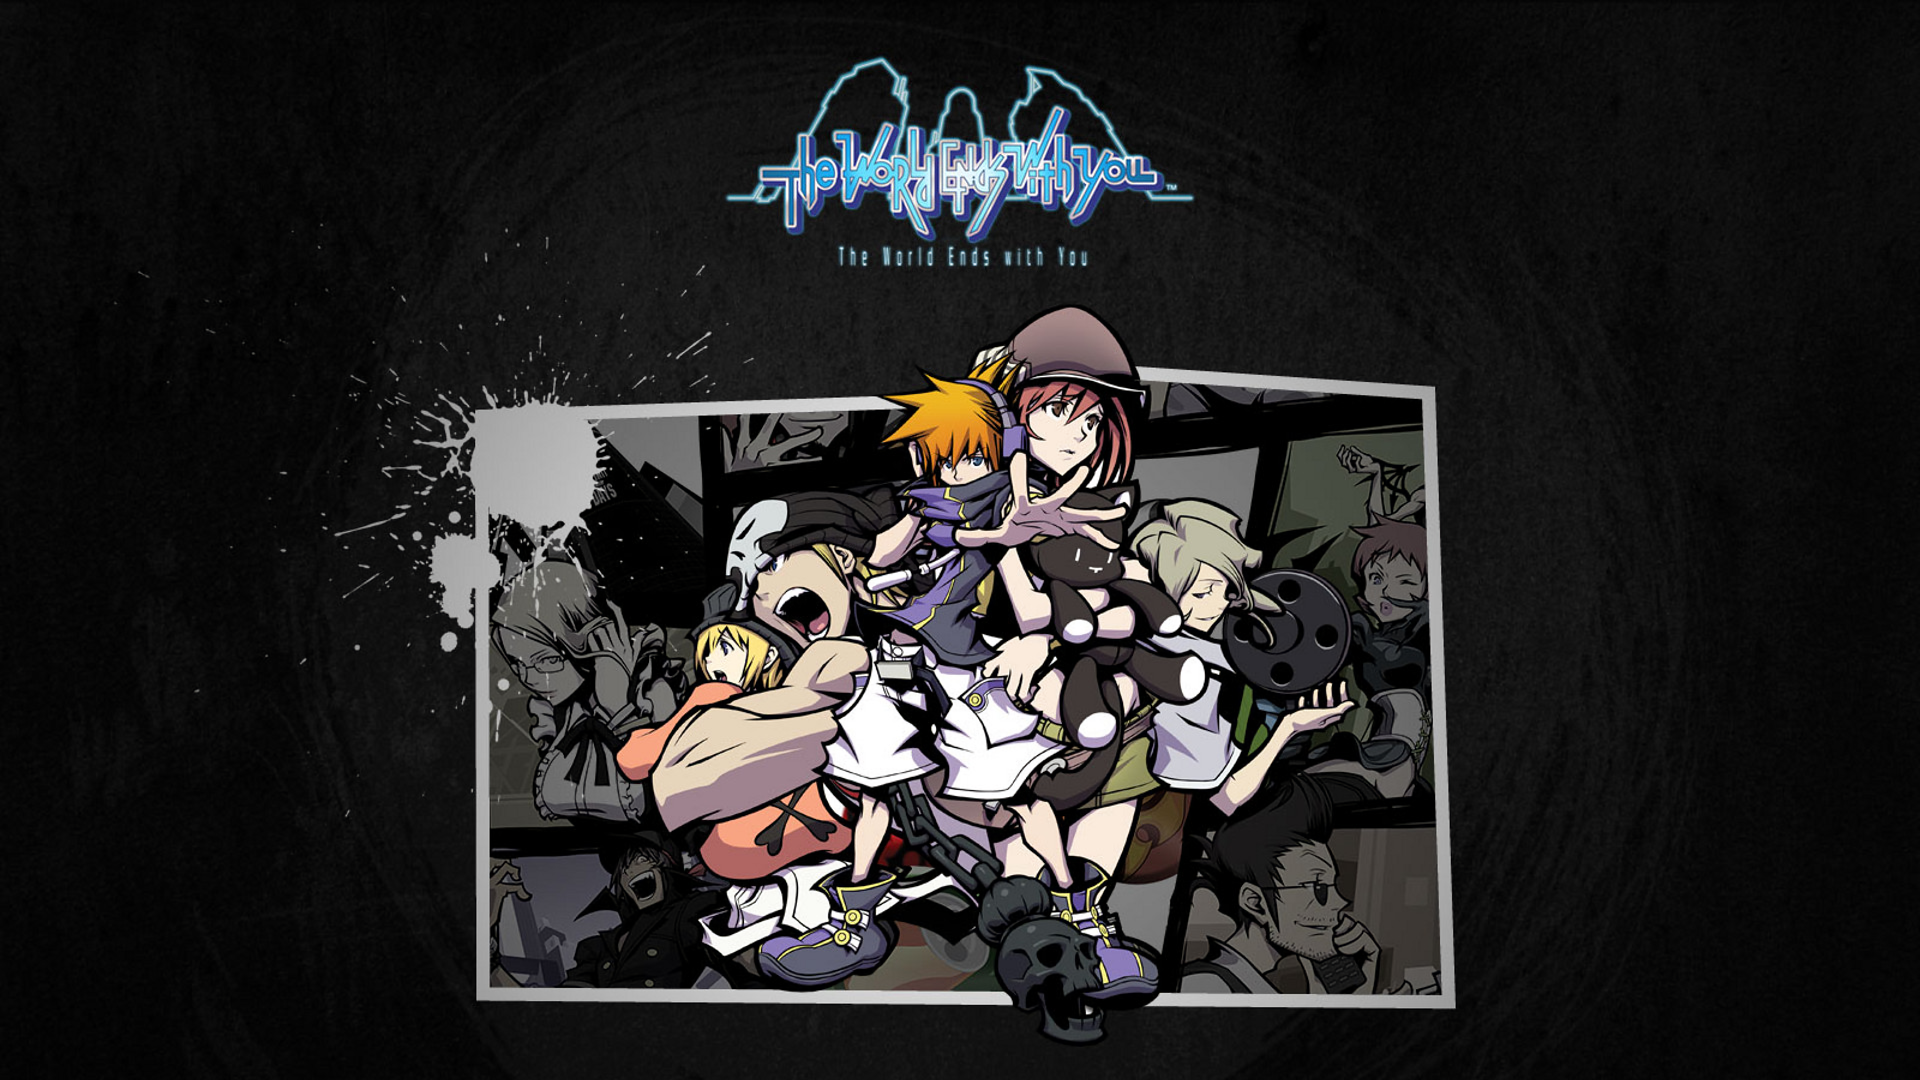 The World Ends With You Hd Wallpaper Background Image